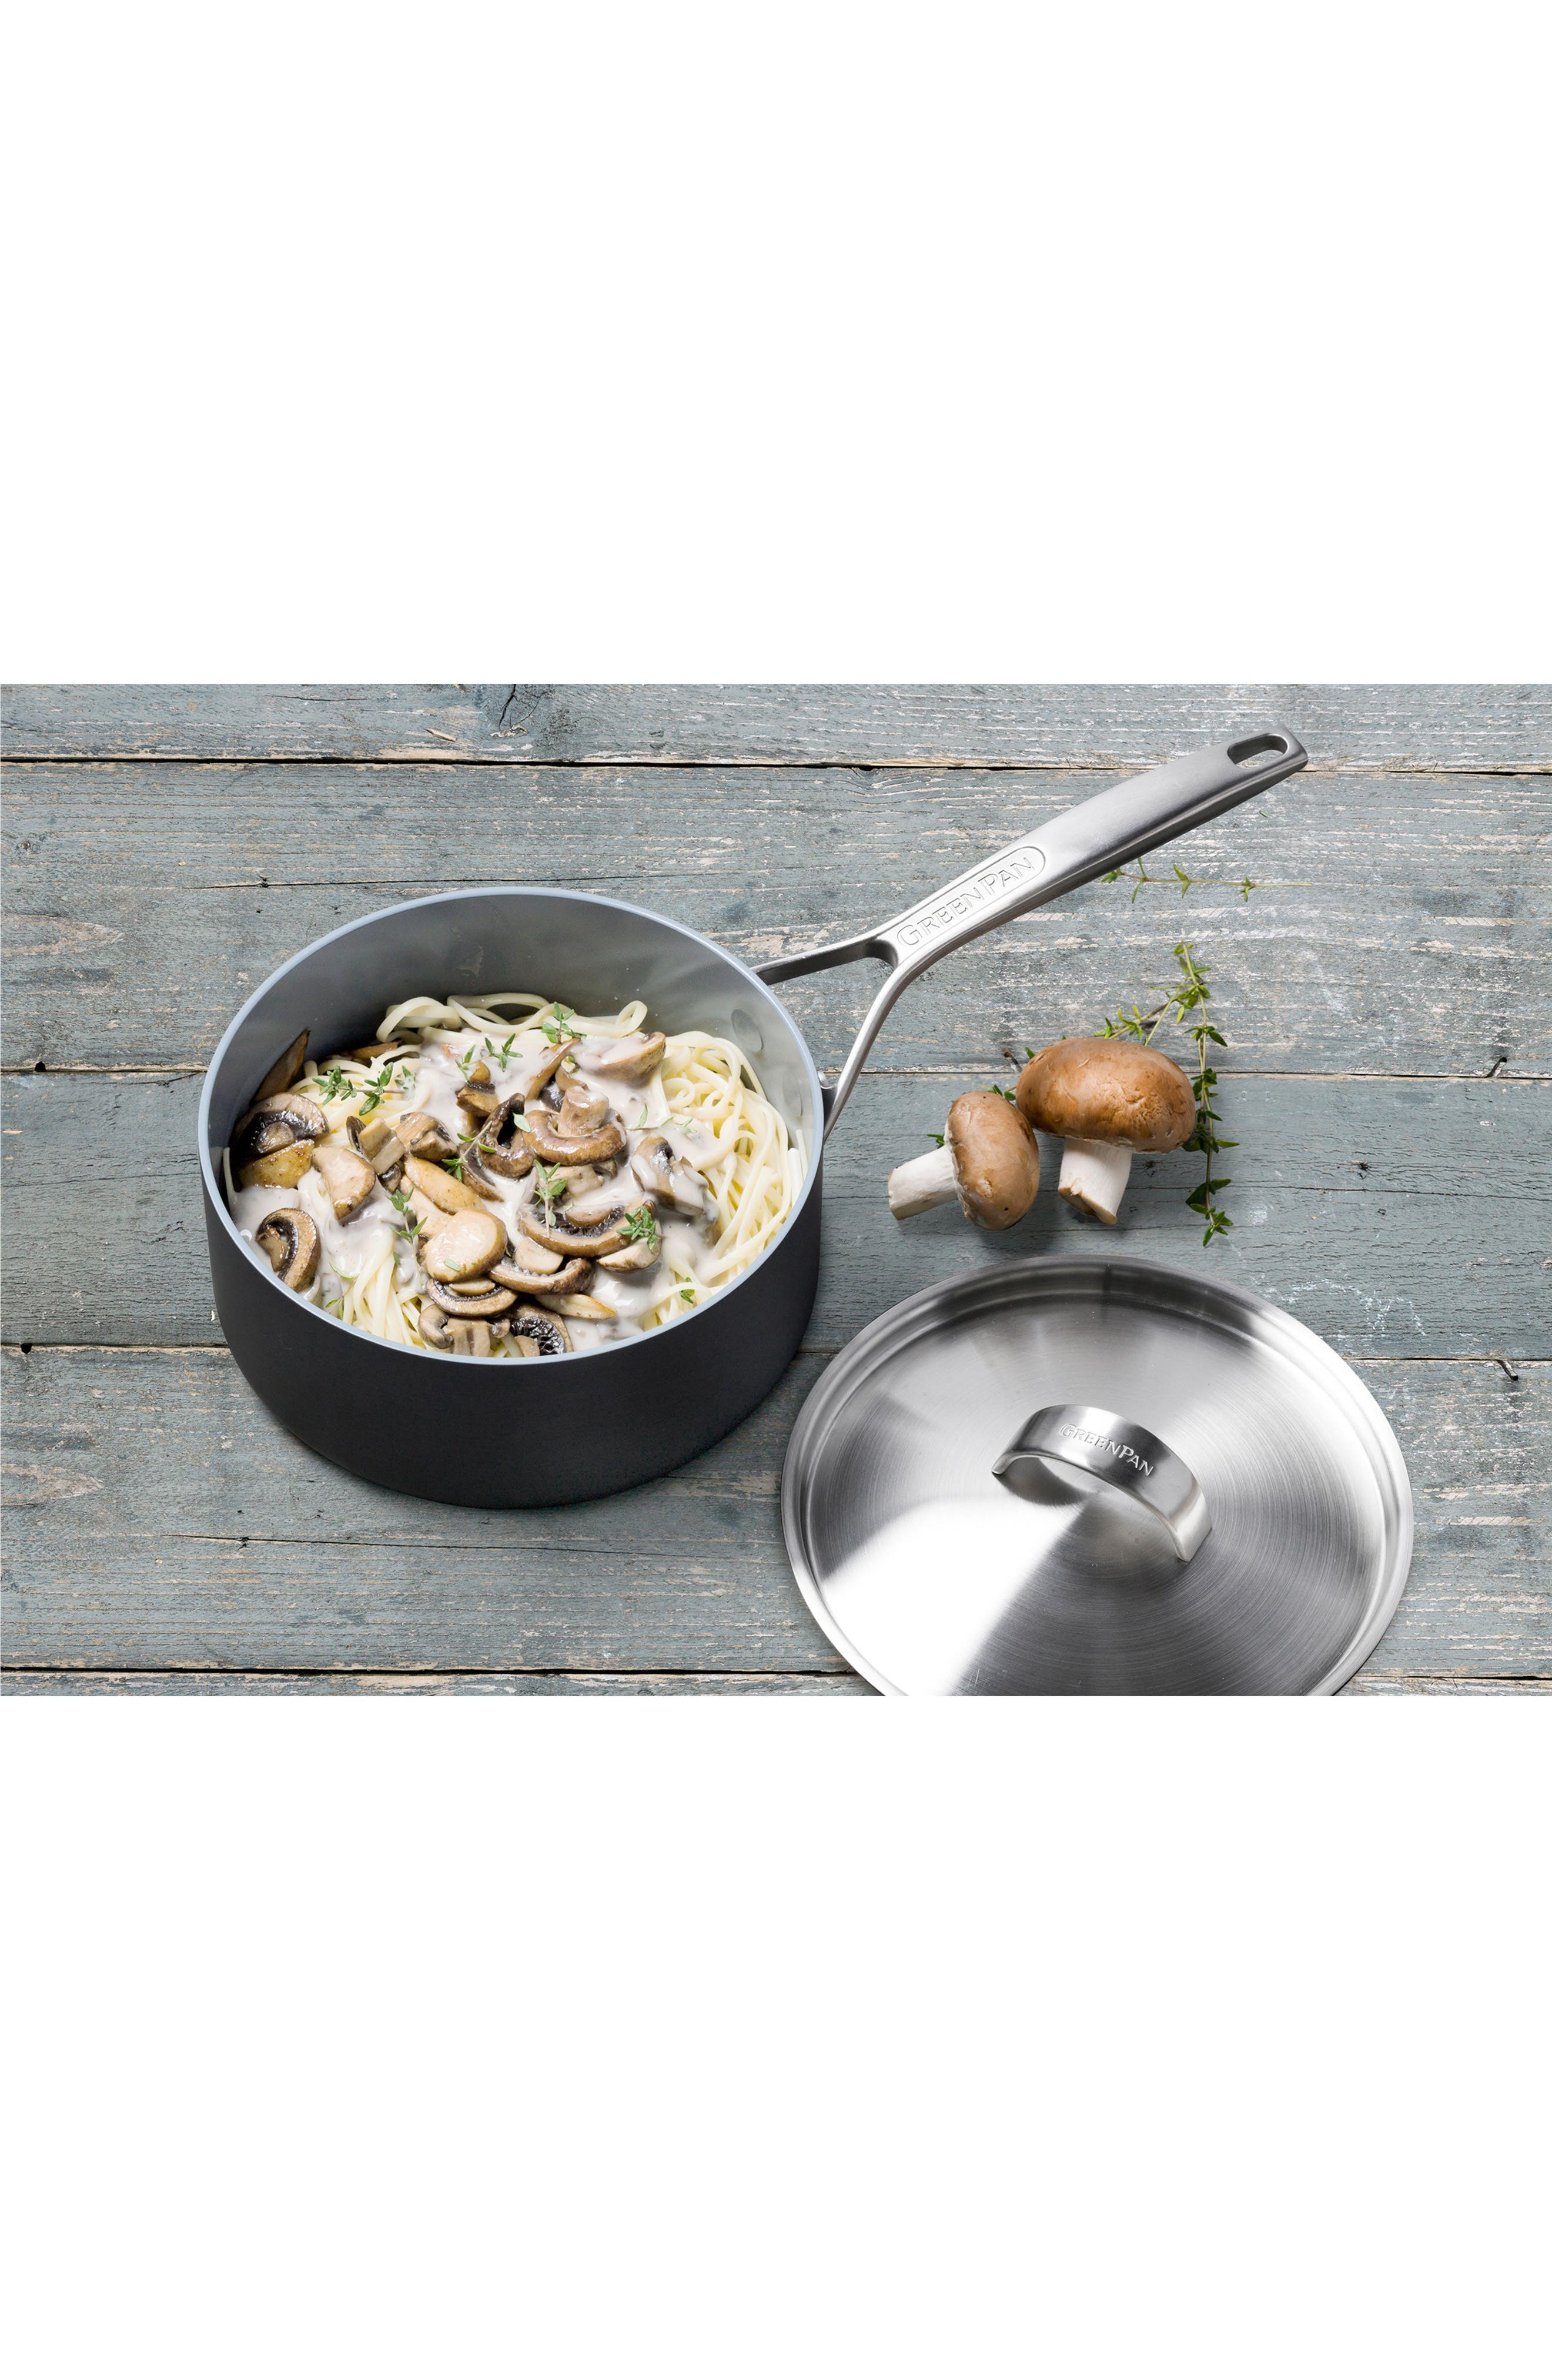 Paris 3-Quart Multilayer Stainless Steel Ceramic Nonstick Saucepan with Lid,                             Alternate thumbnail 2, color,                             Grey